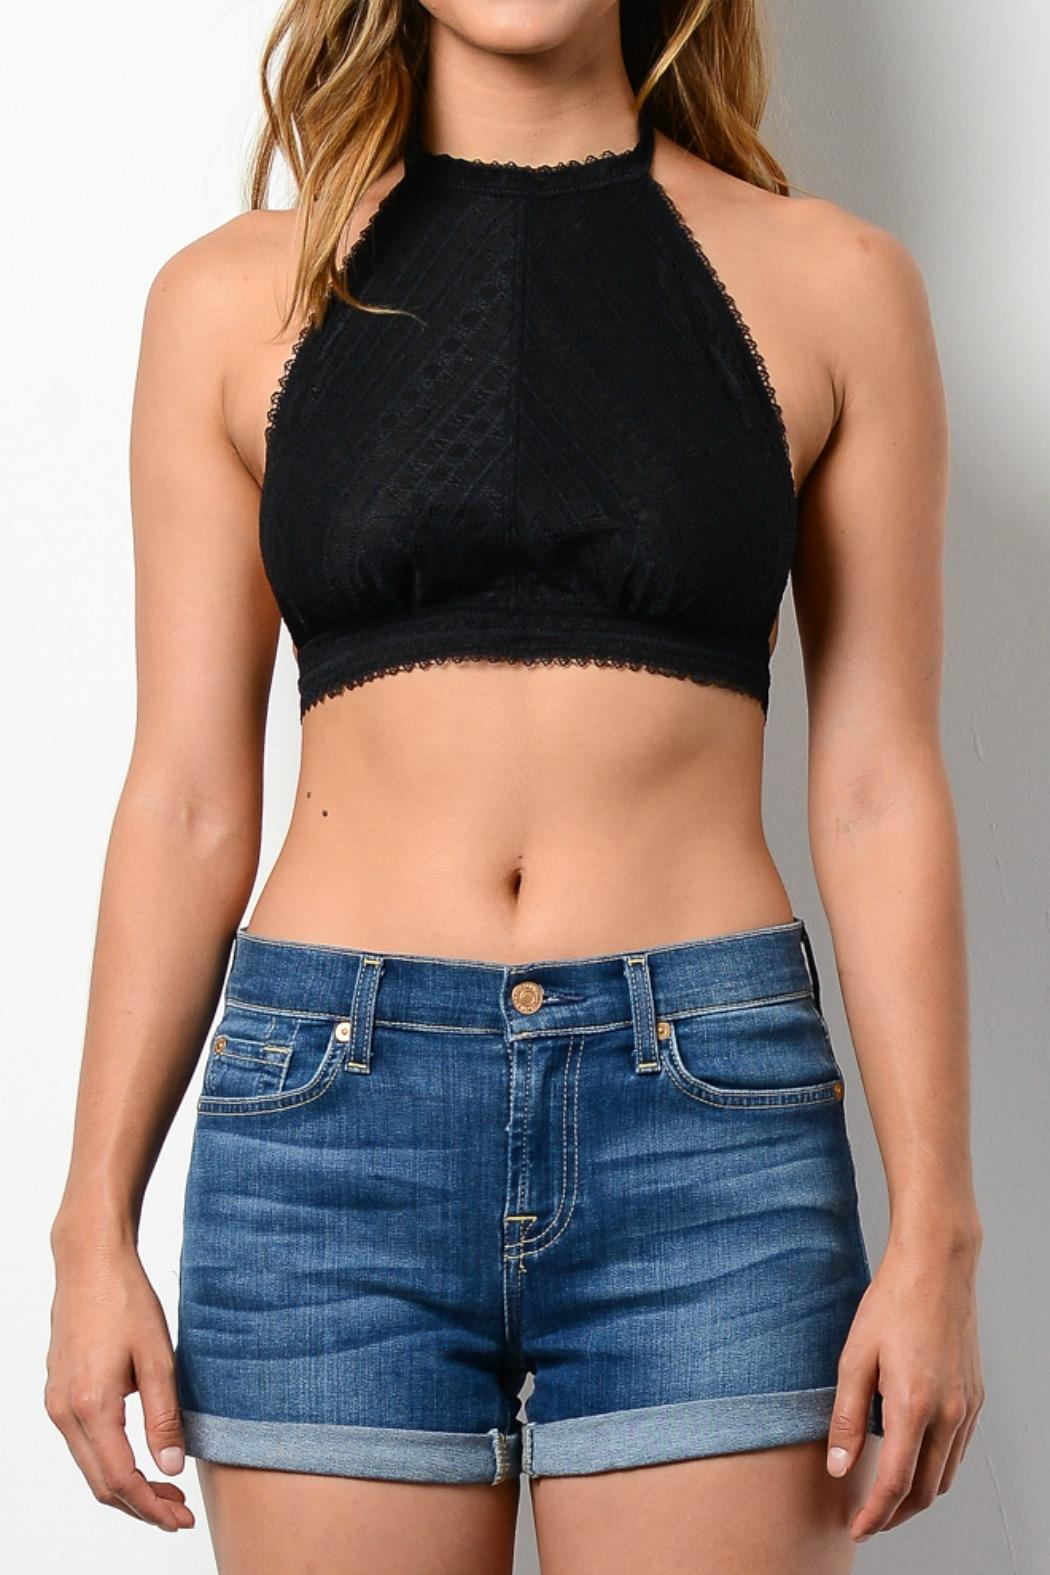 a164c9b351 Wishlist Halter Top Bralette from New Jersey by Making Waves ...